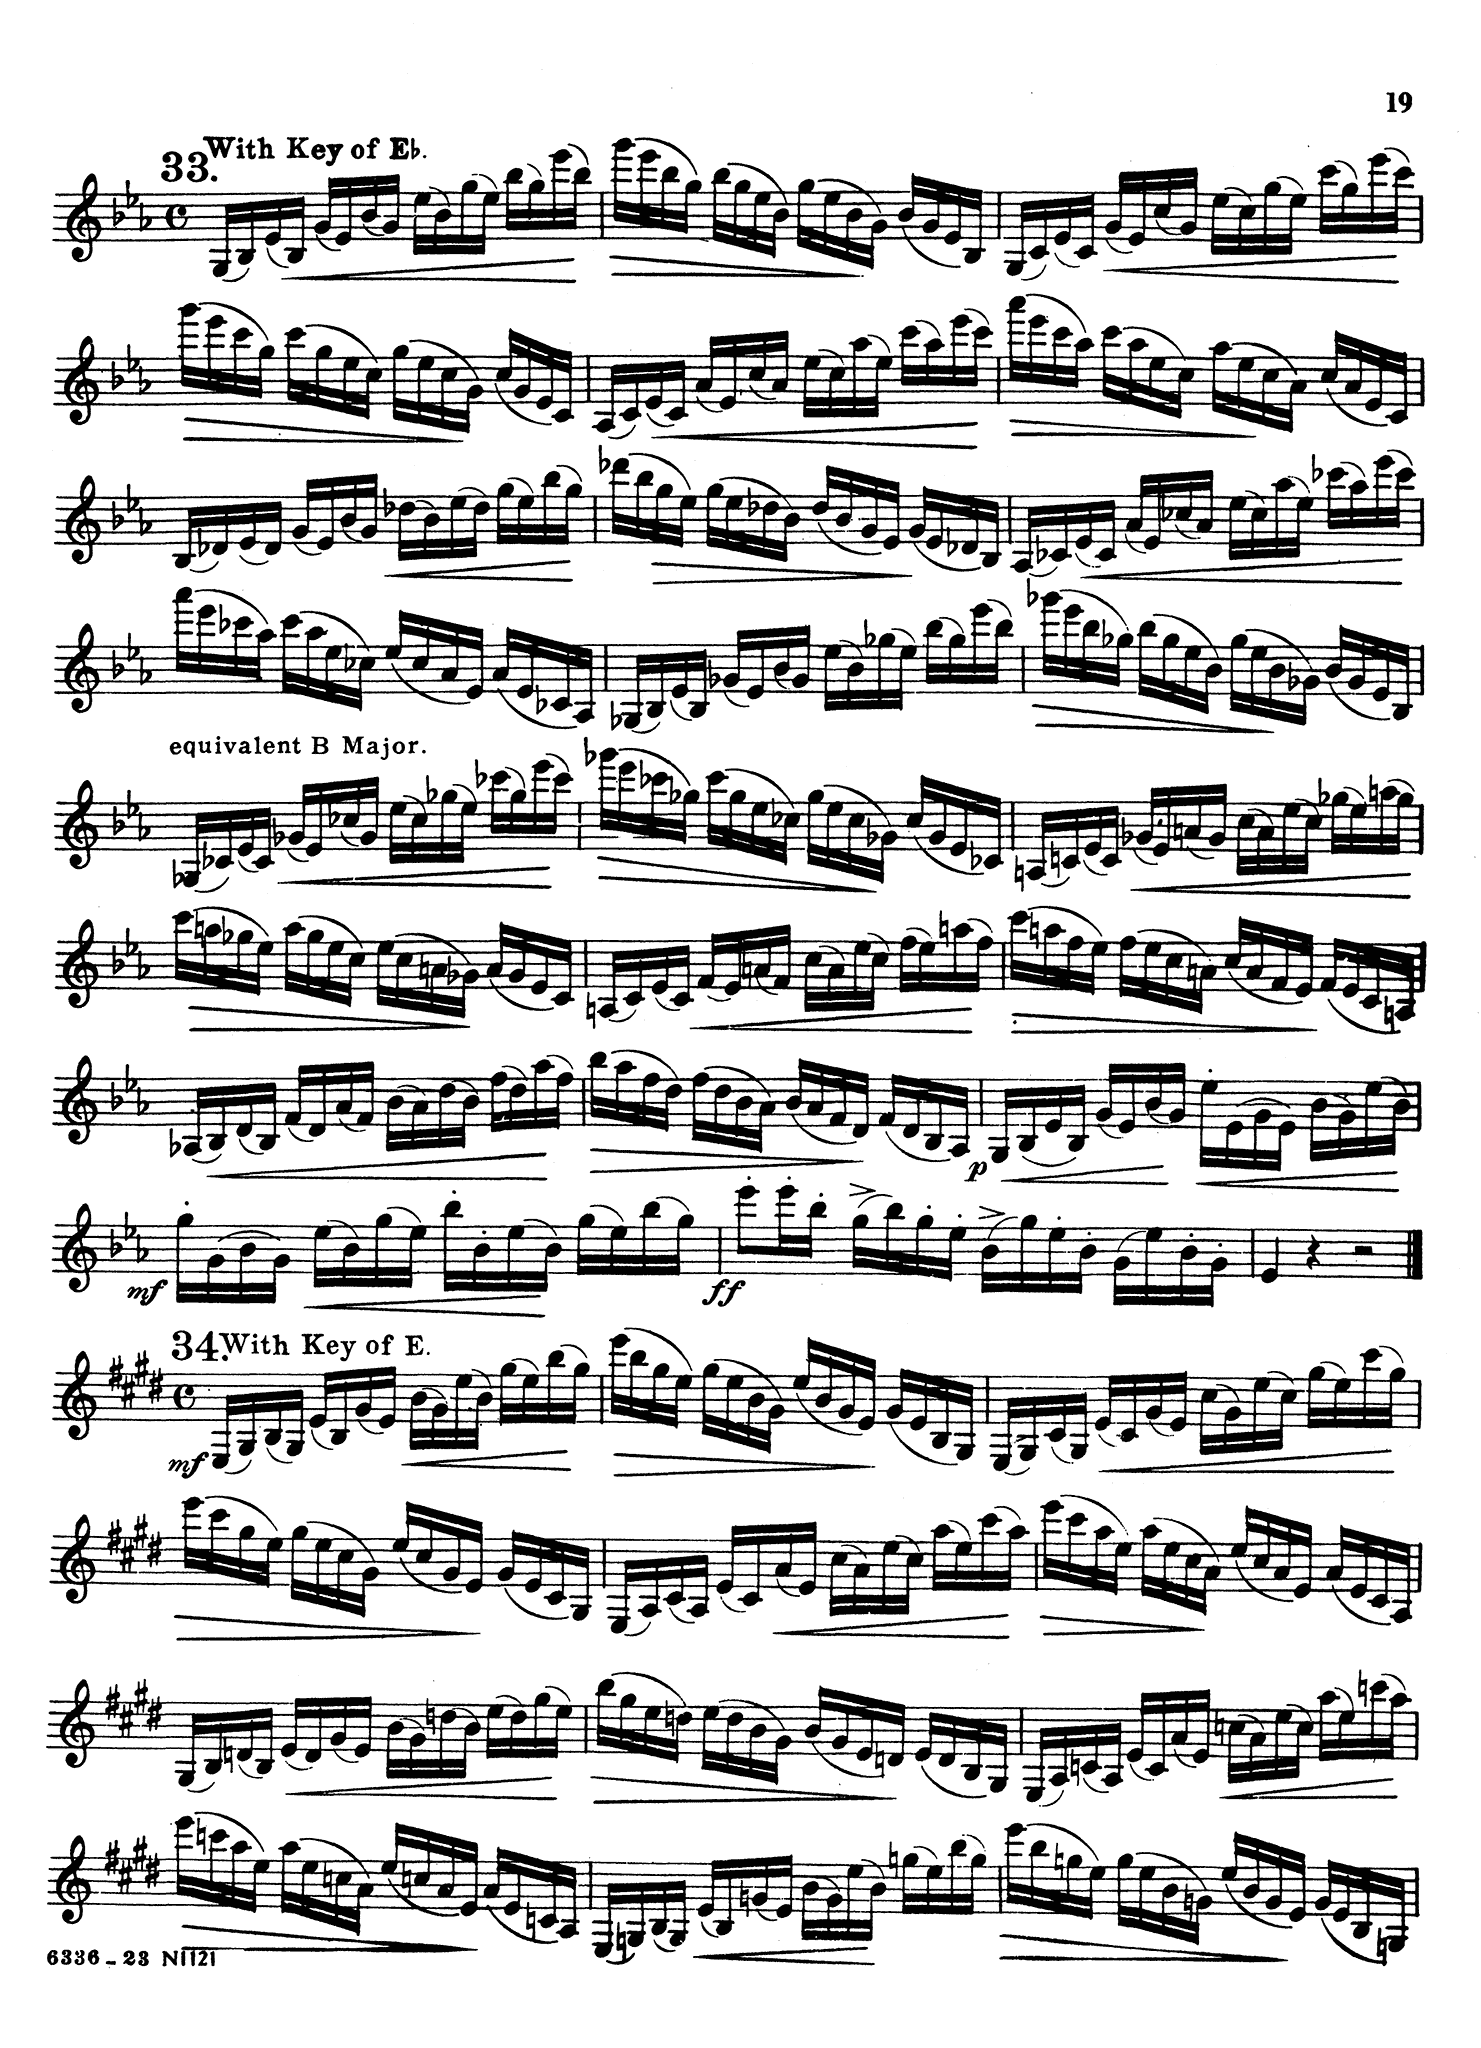 416 Progressive Studies for Clarinet, Book 3 Page 19